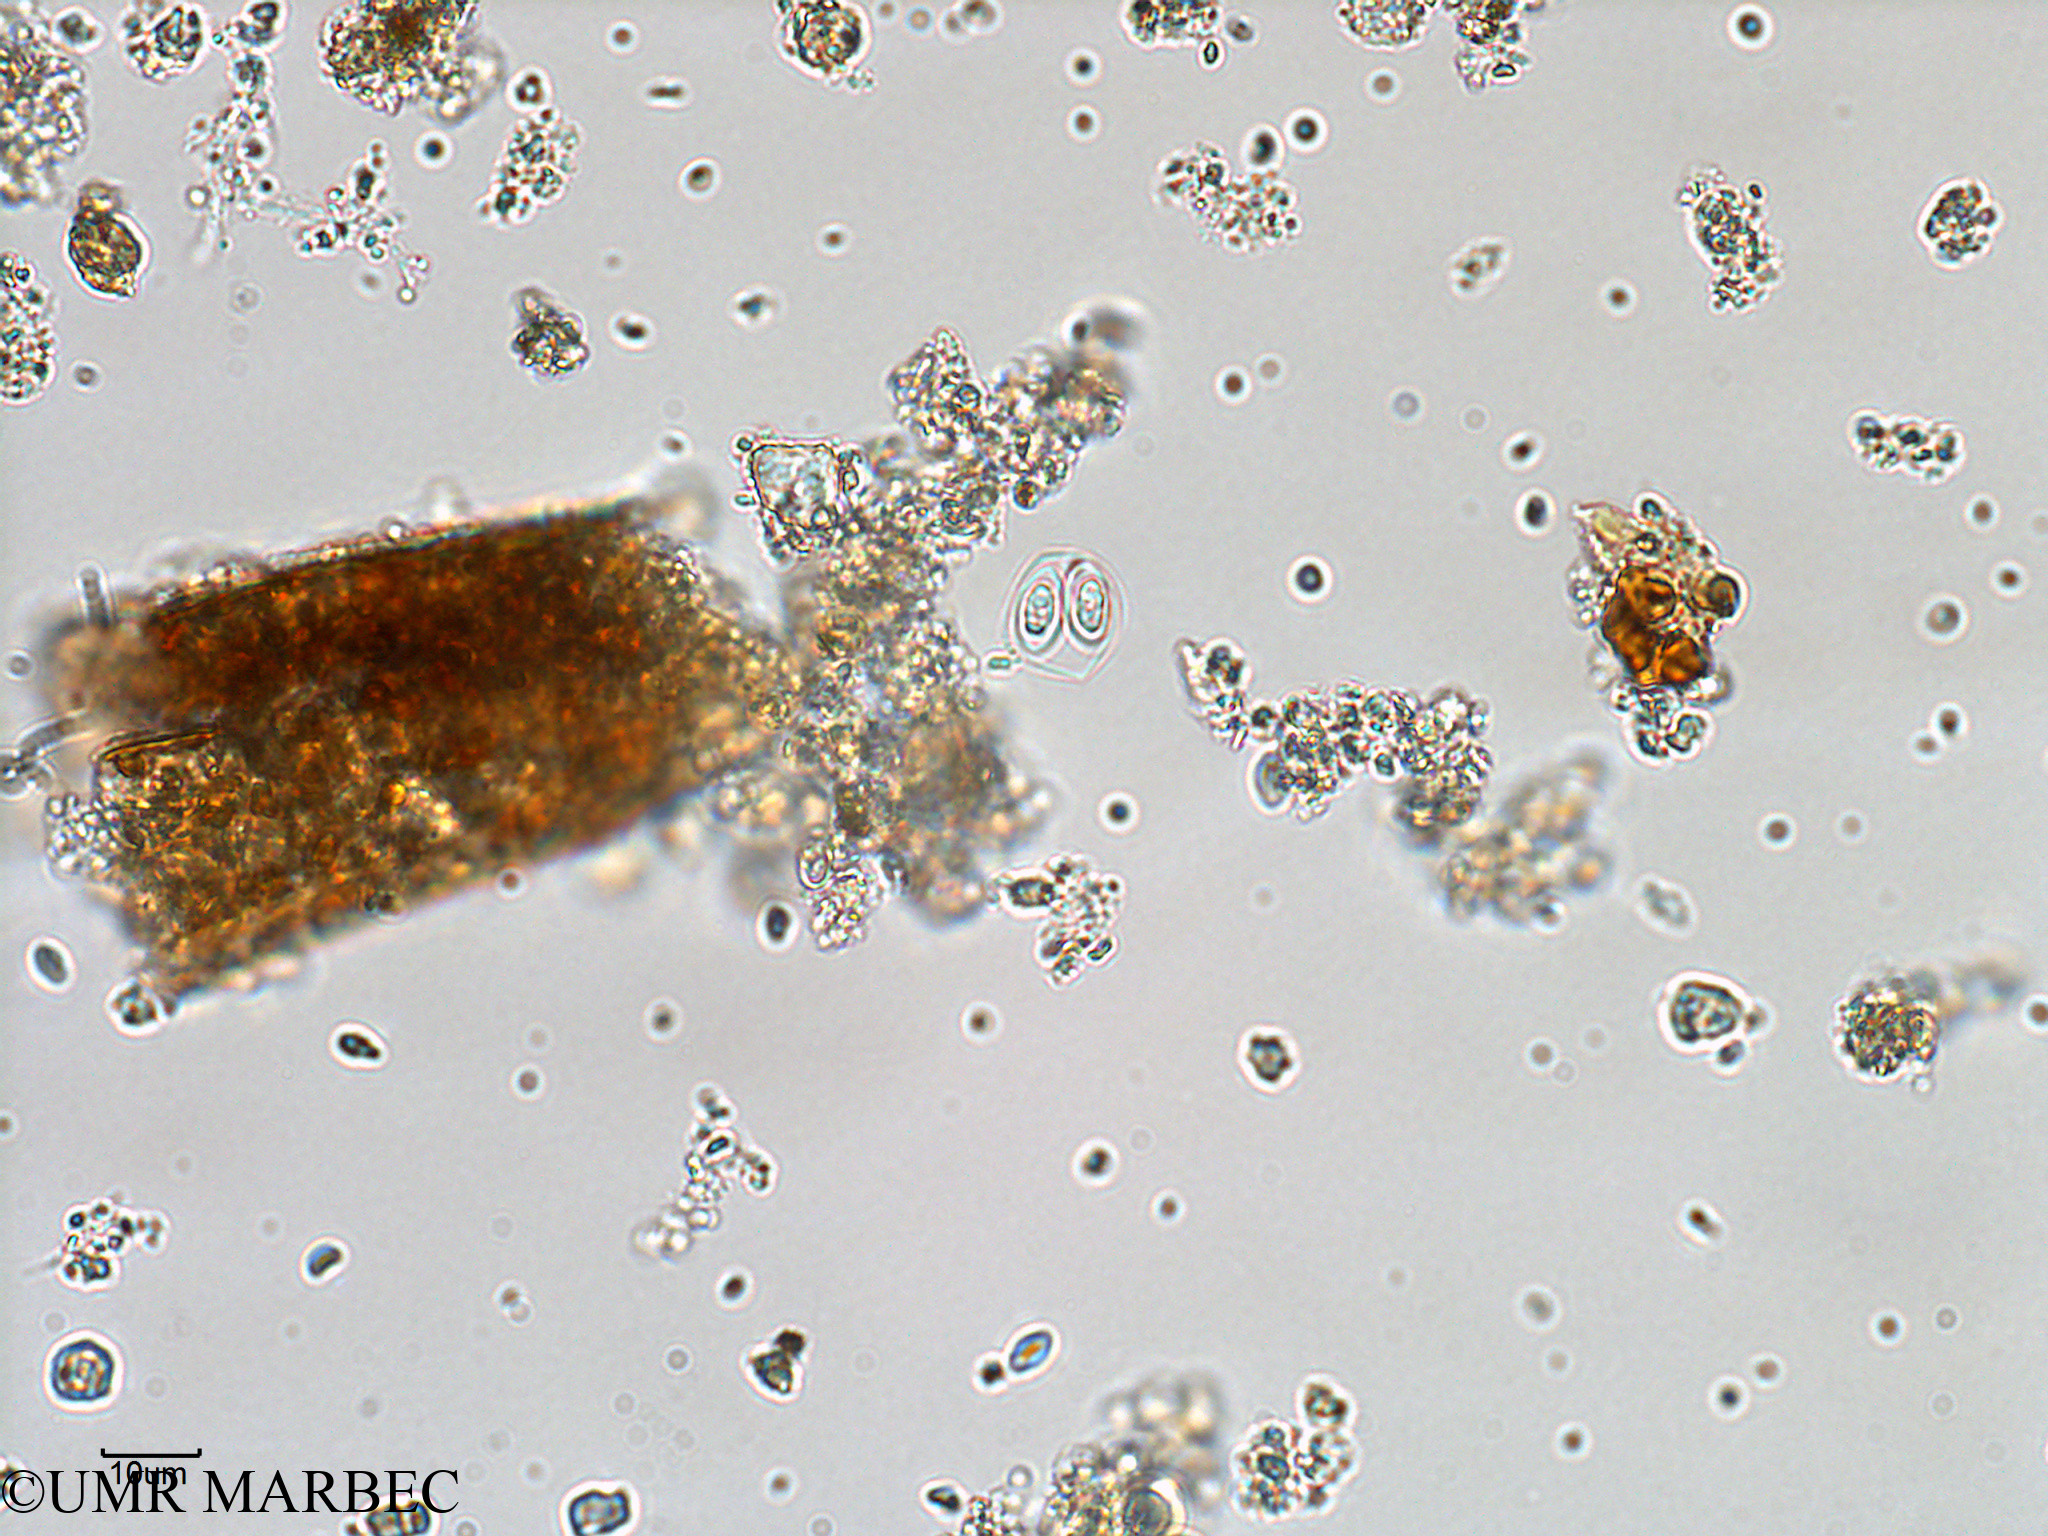 phyto/Bizerte/bizerte_bay/RISCO February 2015/Oocystis sp (ancien Baie_T1-A_oocystis-12).tif(copy).jpg